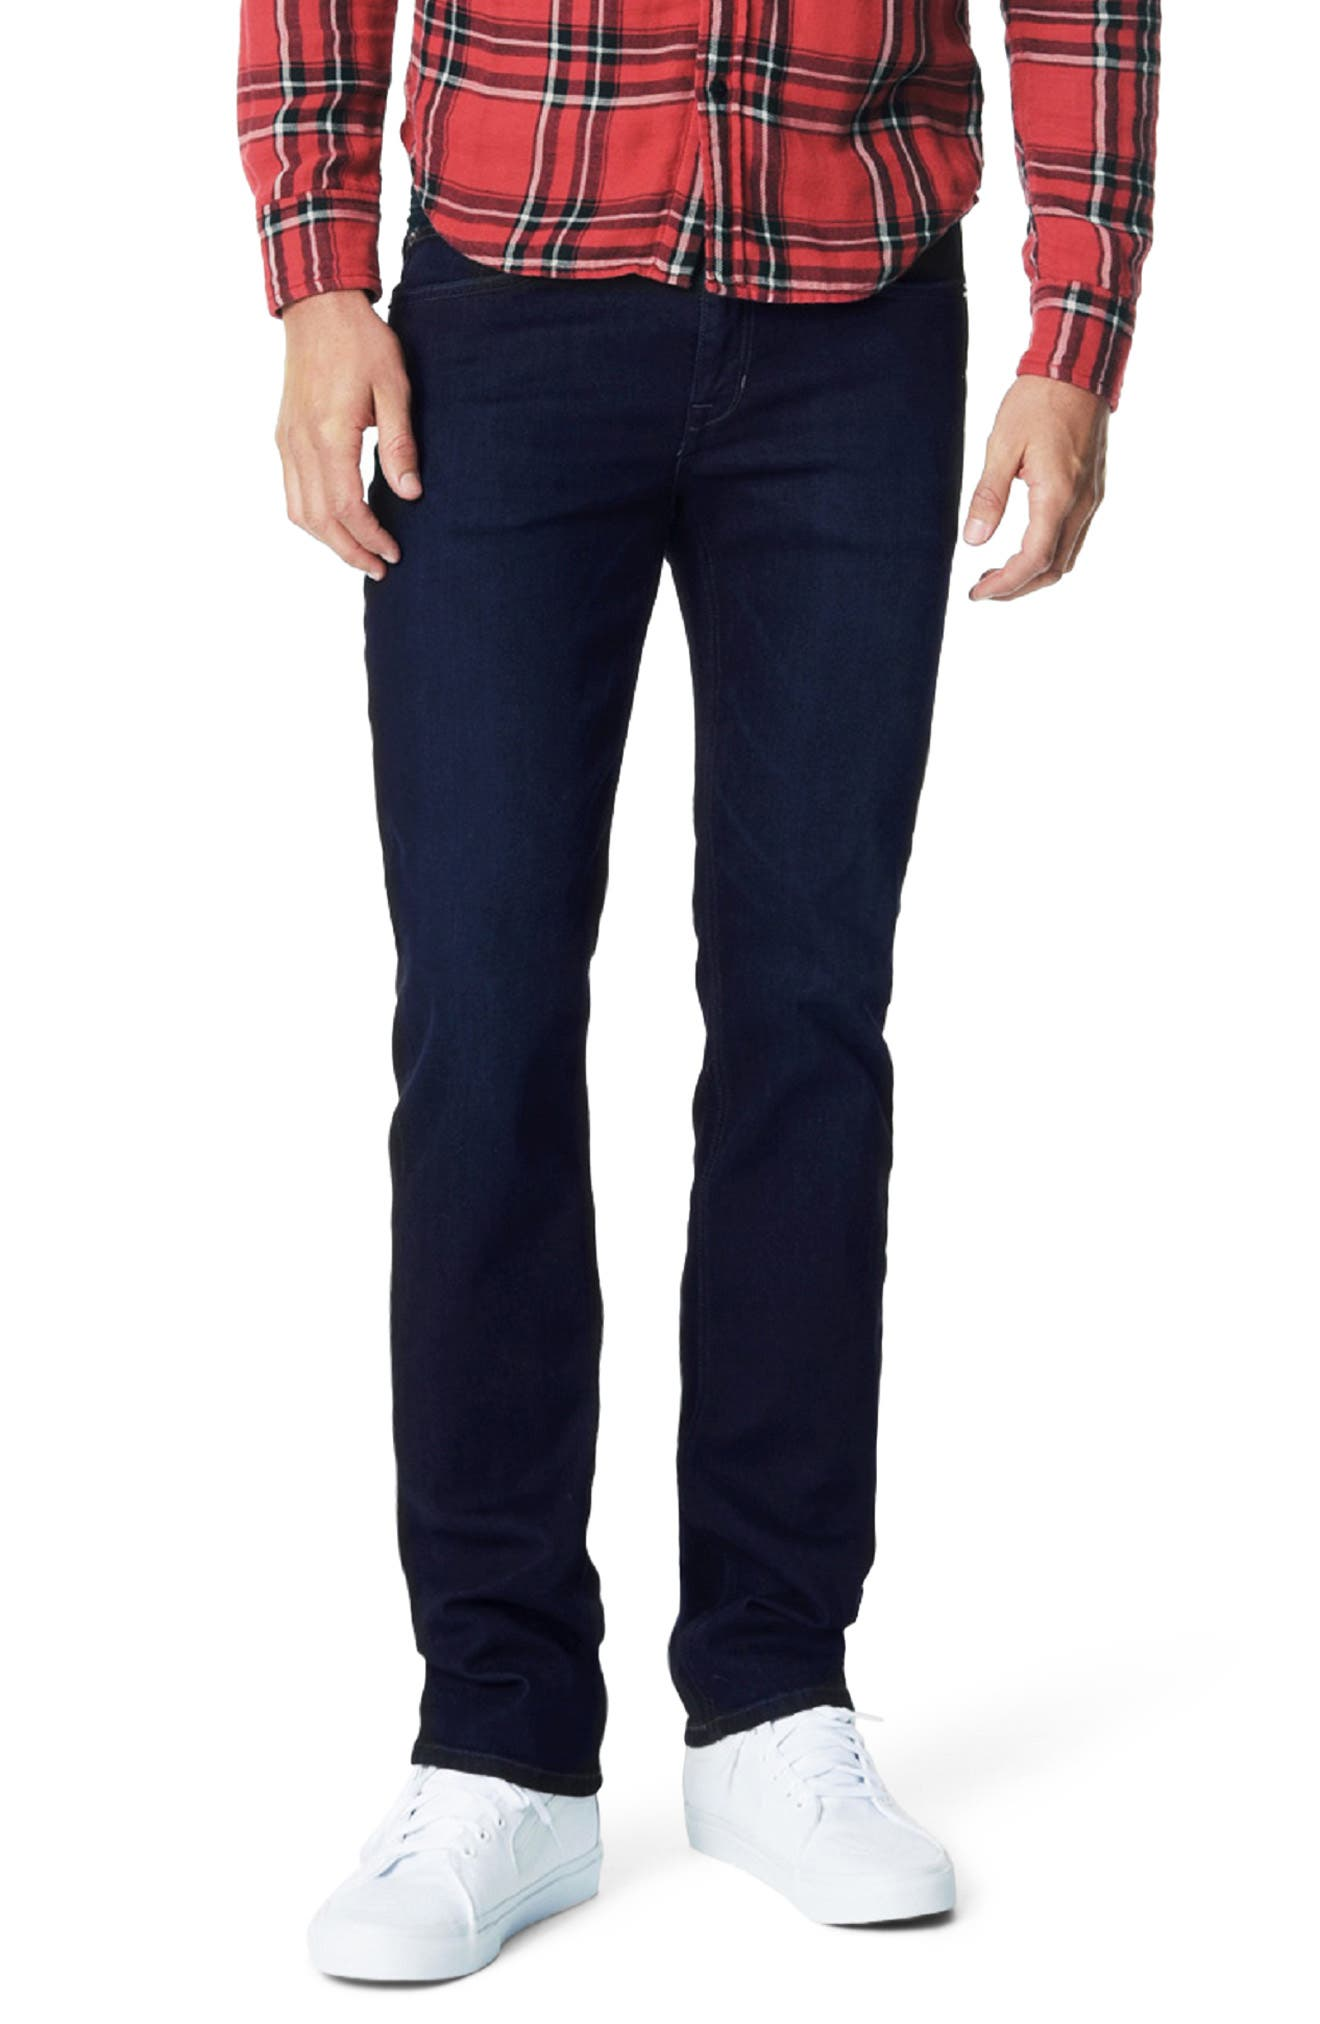 Brixton Slim Straight Leg Jeans,                         Main,                         color, LEIB